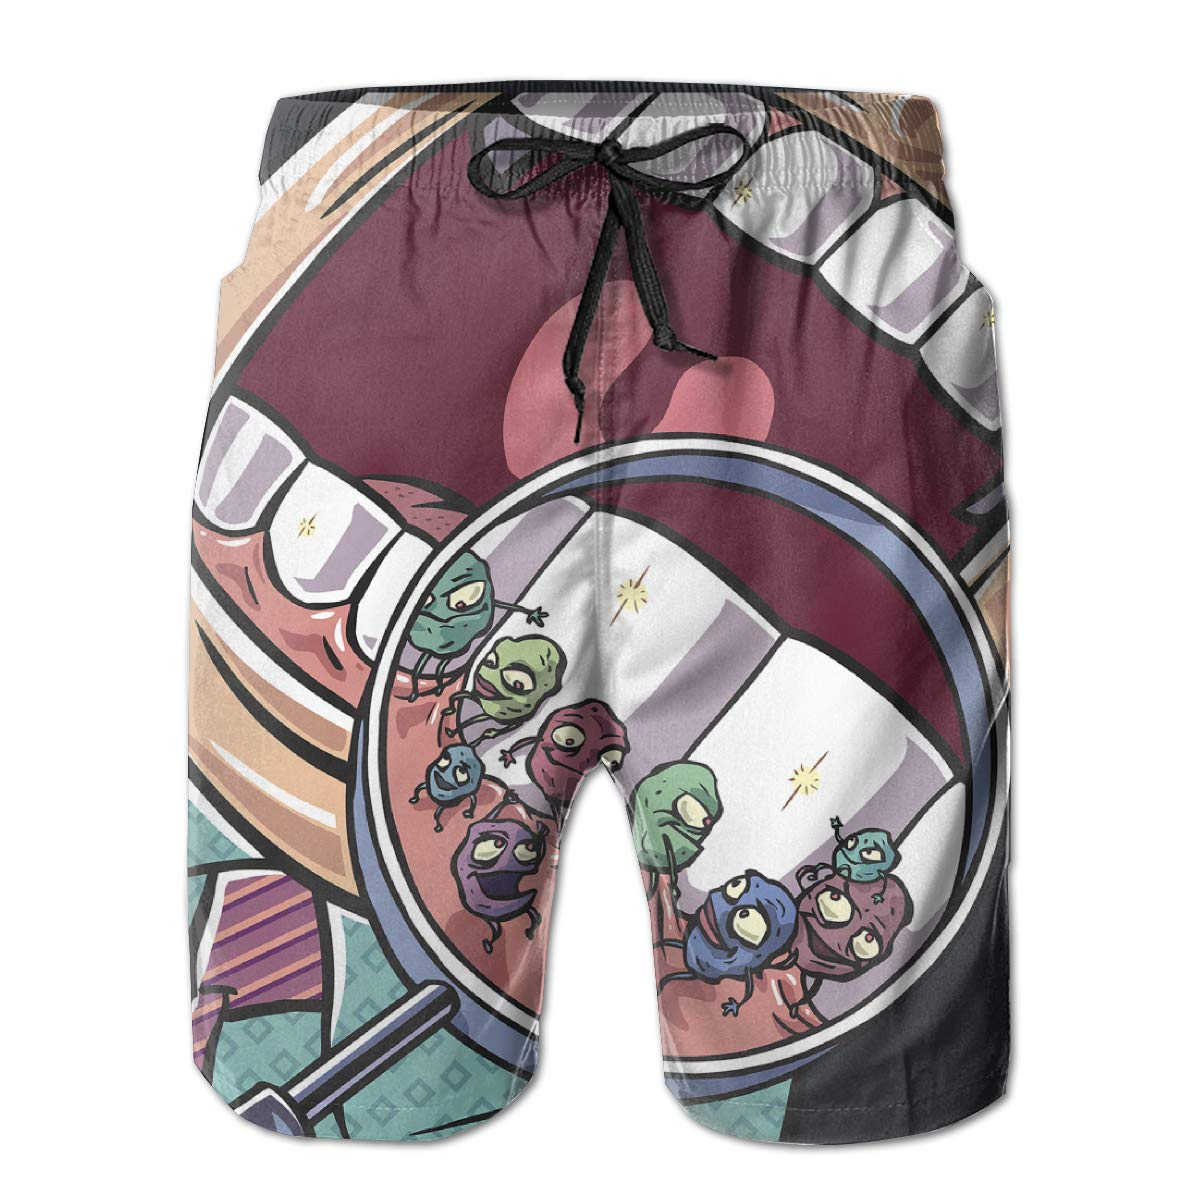 Protect Our Teeth Mens Swimming Pants Swimming and Other Marine Sports Suitable for Surfing Hateone Beach Shorts